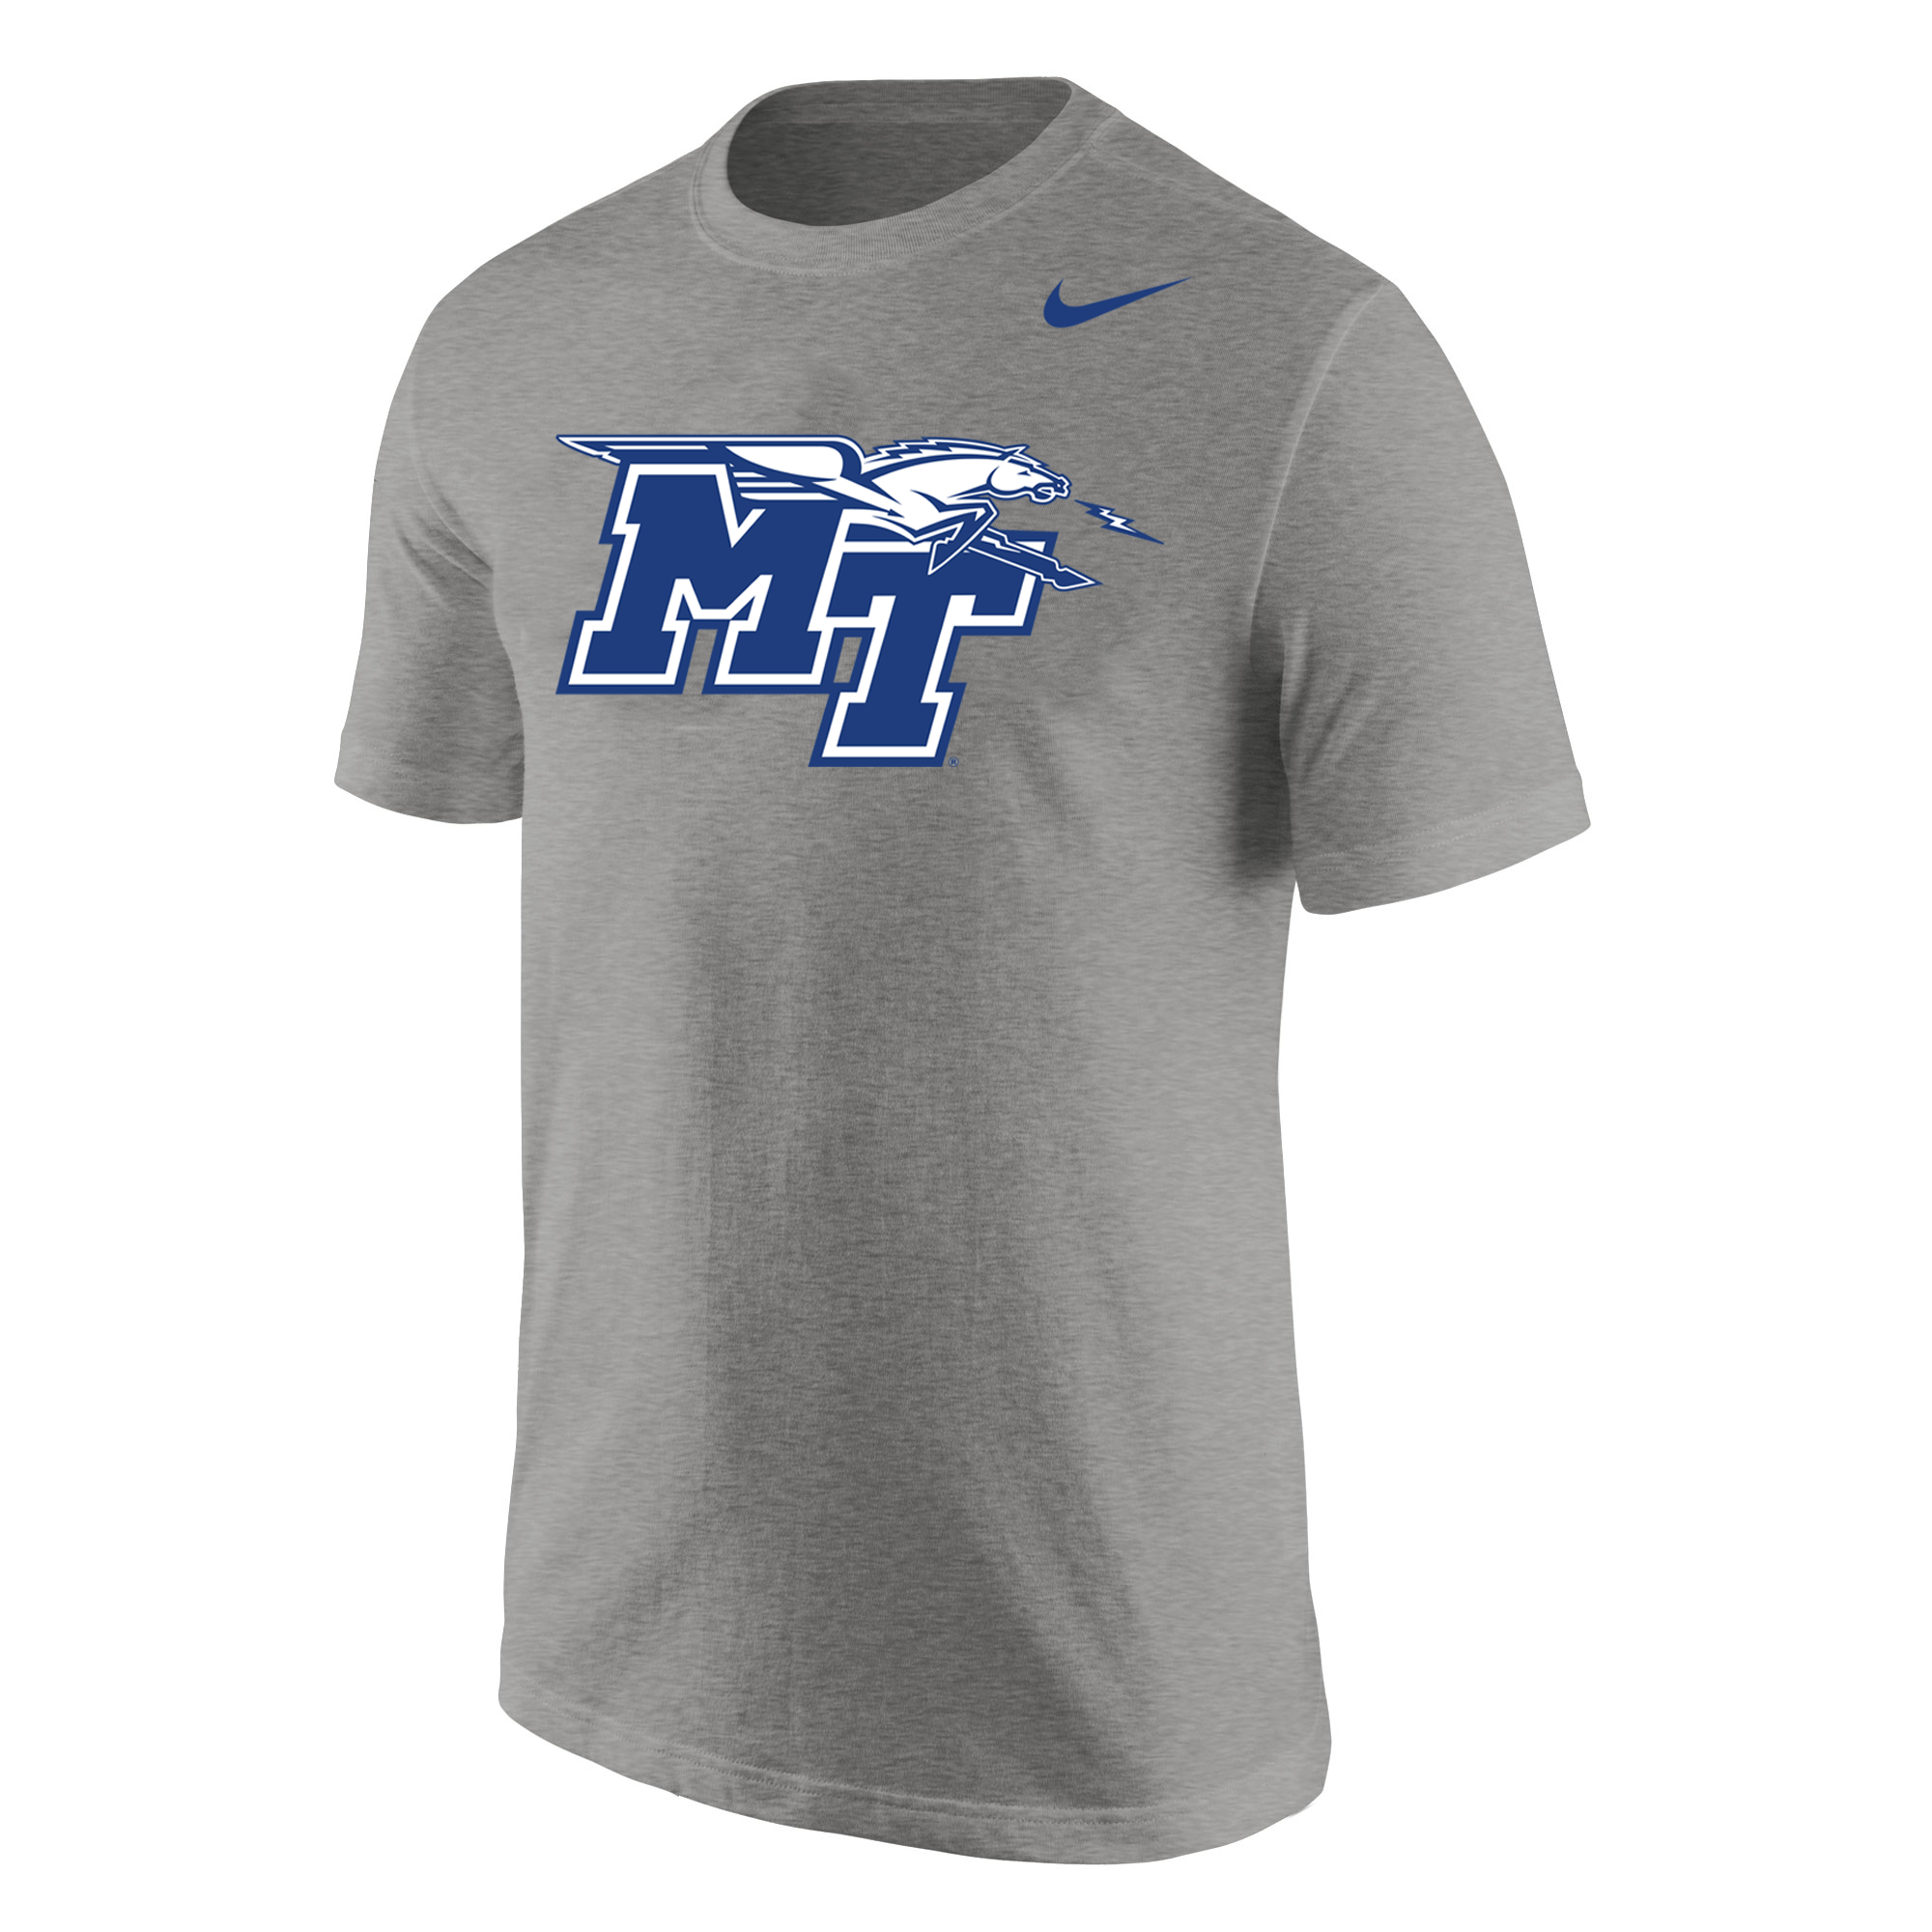 MT Logo w/ Lightning Nike® Core Cotton Tshirt